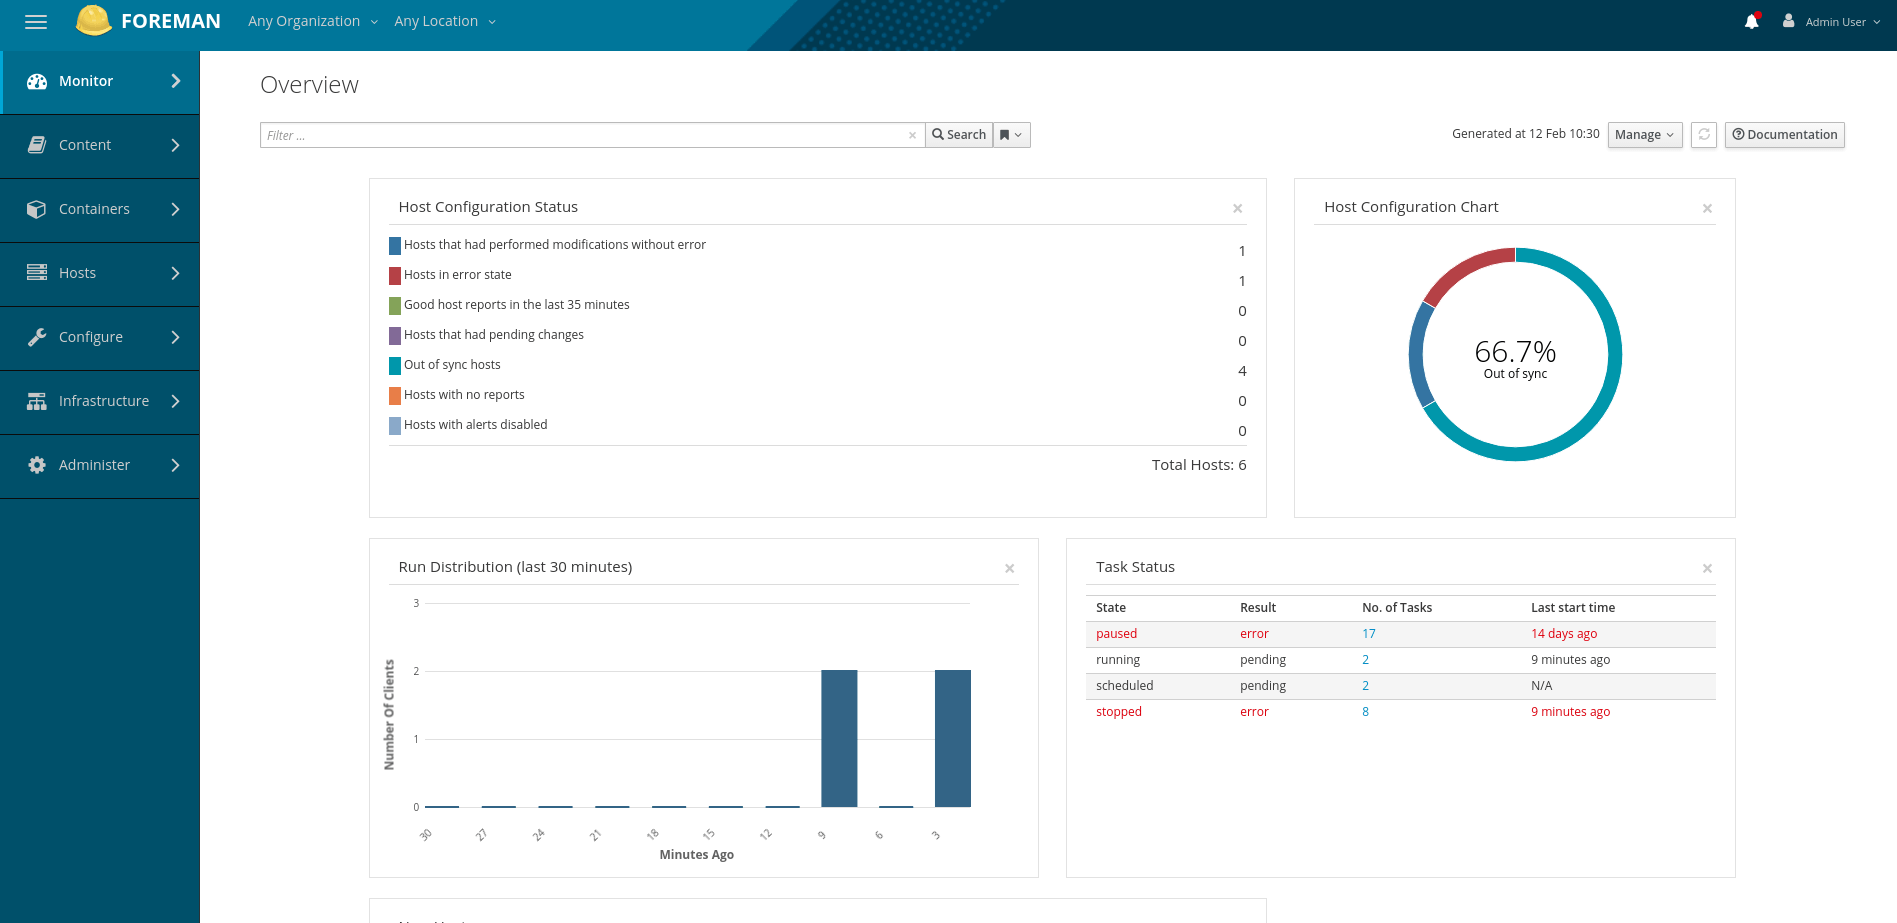 Foreman - lifecycle management tool